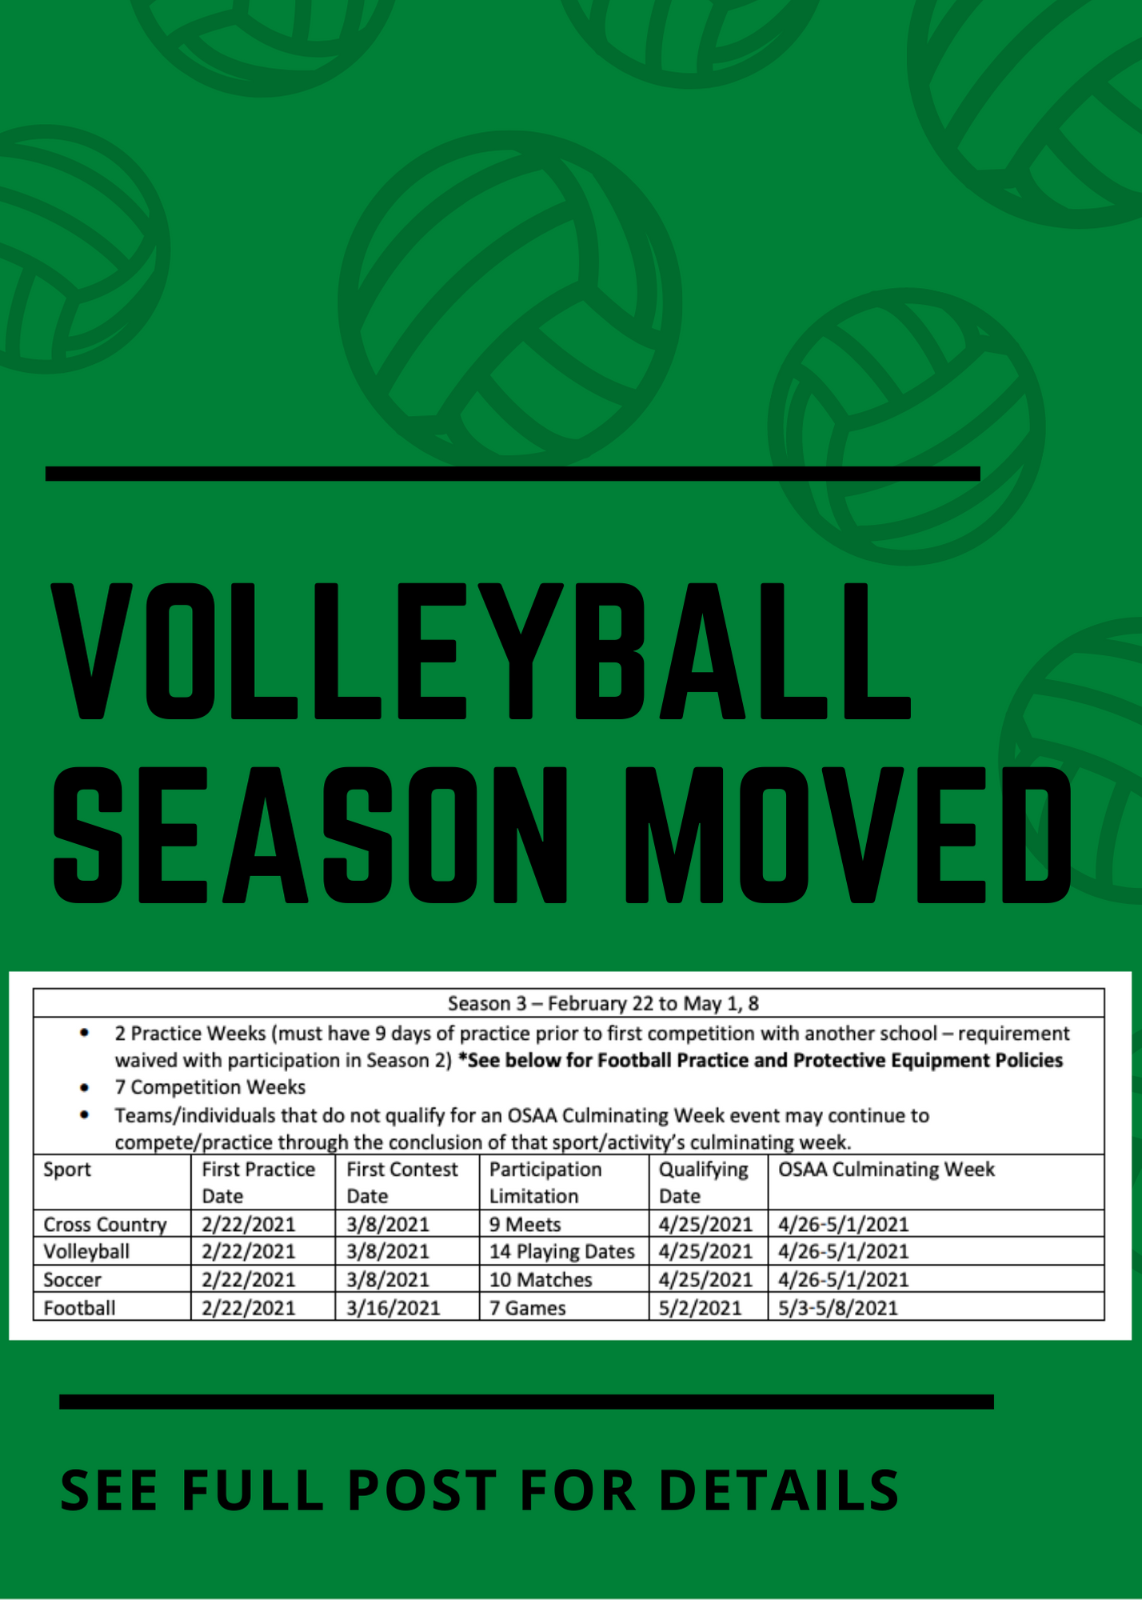 Volleyball Season Moved, New Start Date 2/22